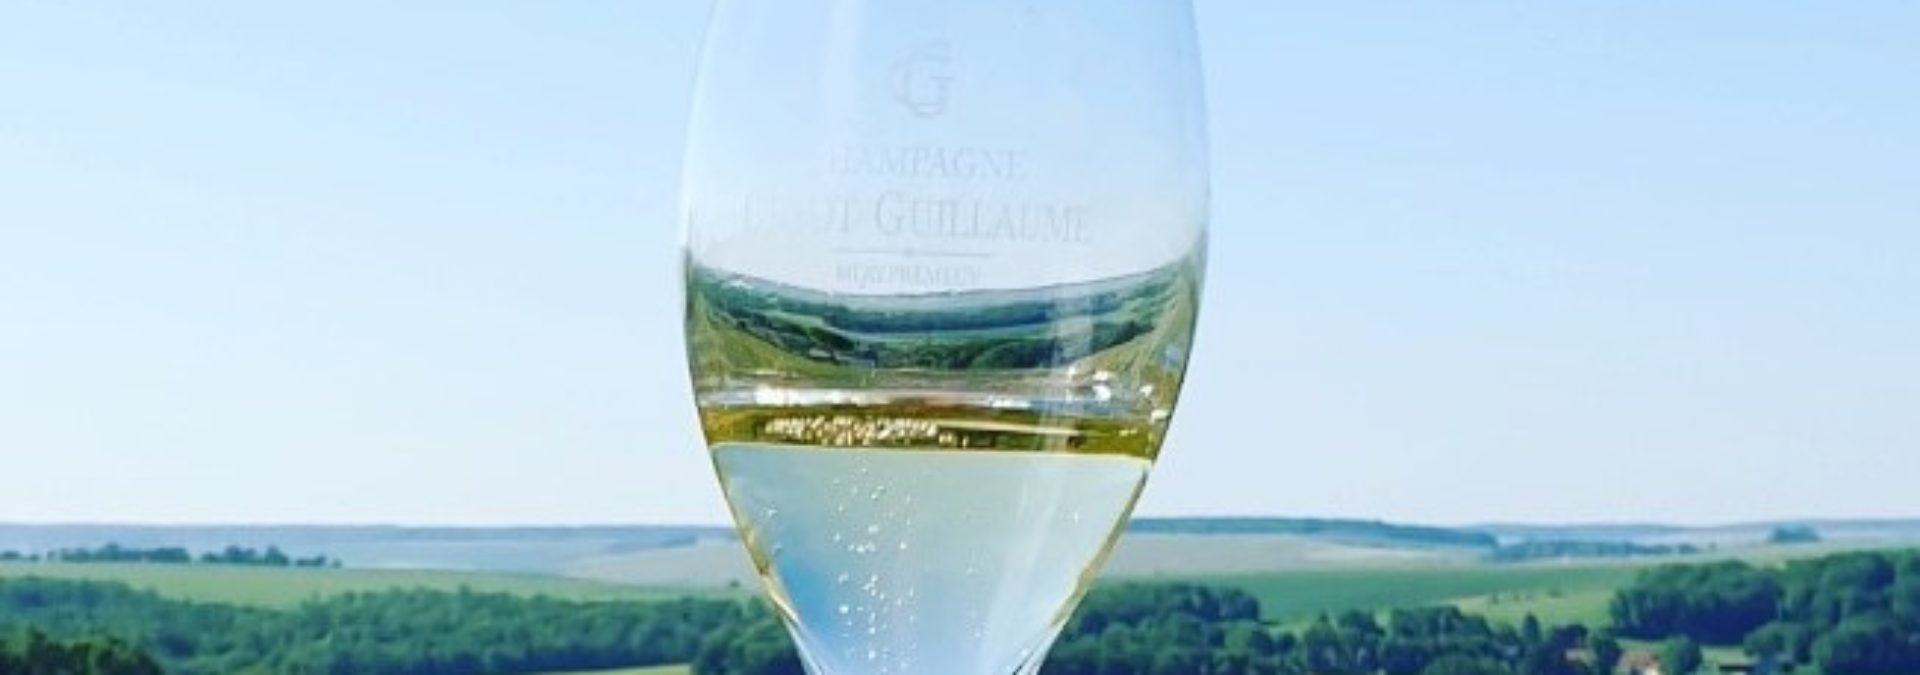 Champagne Guyot-Guillaume